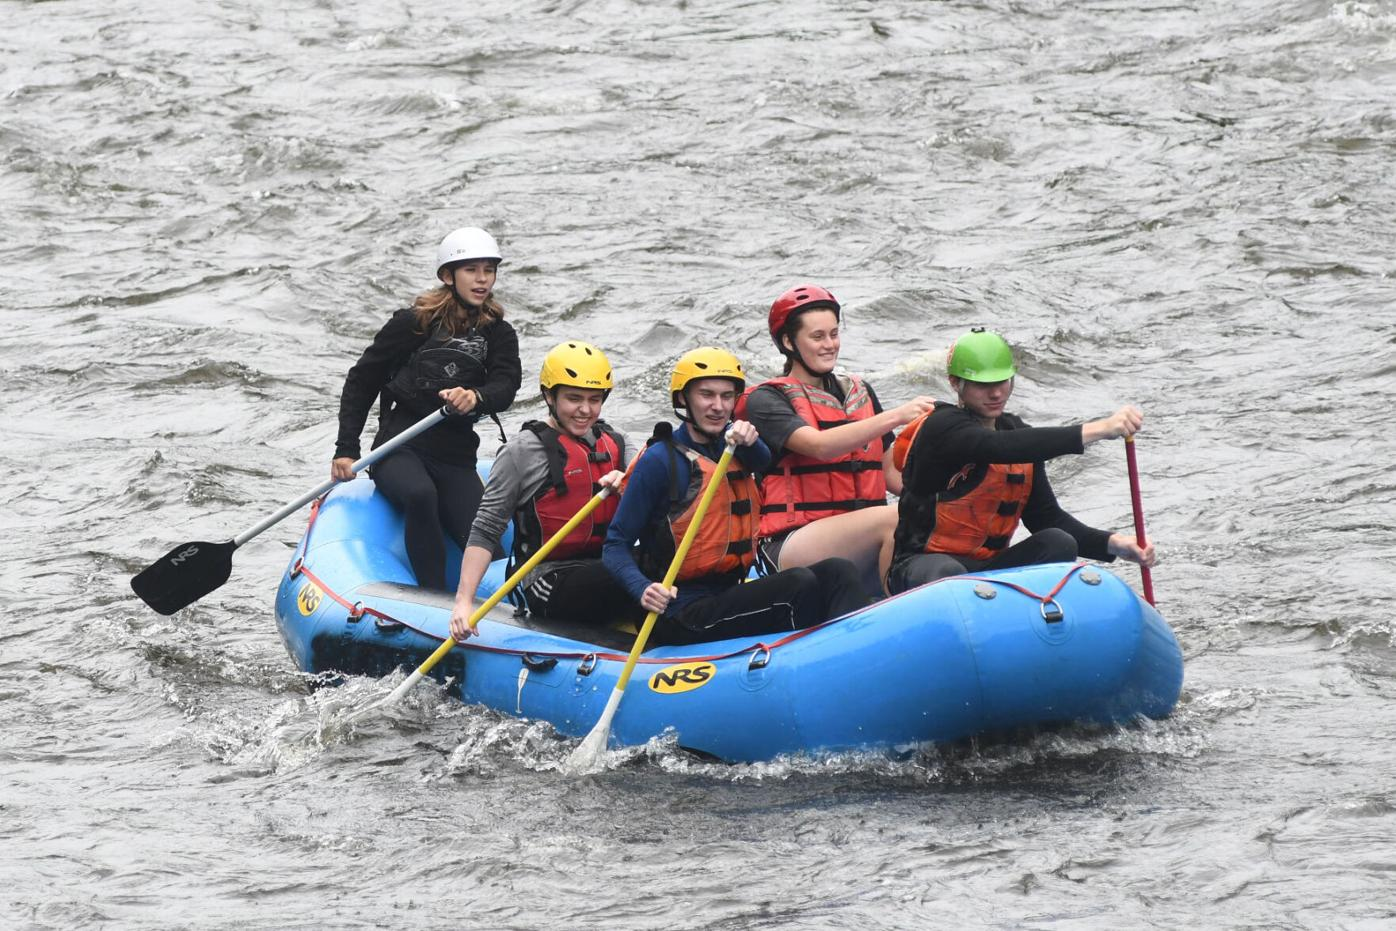 Five people navigate a raft down the river